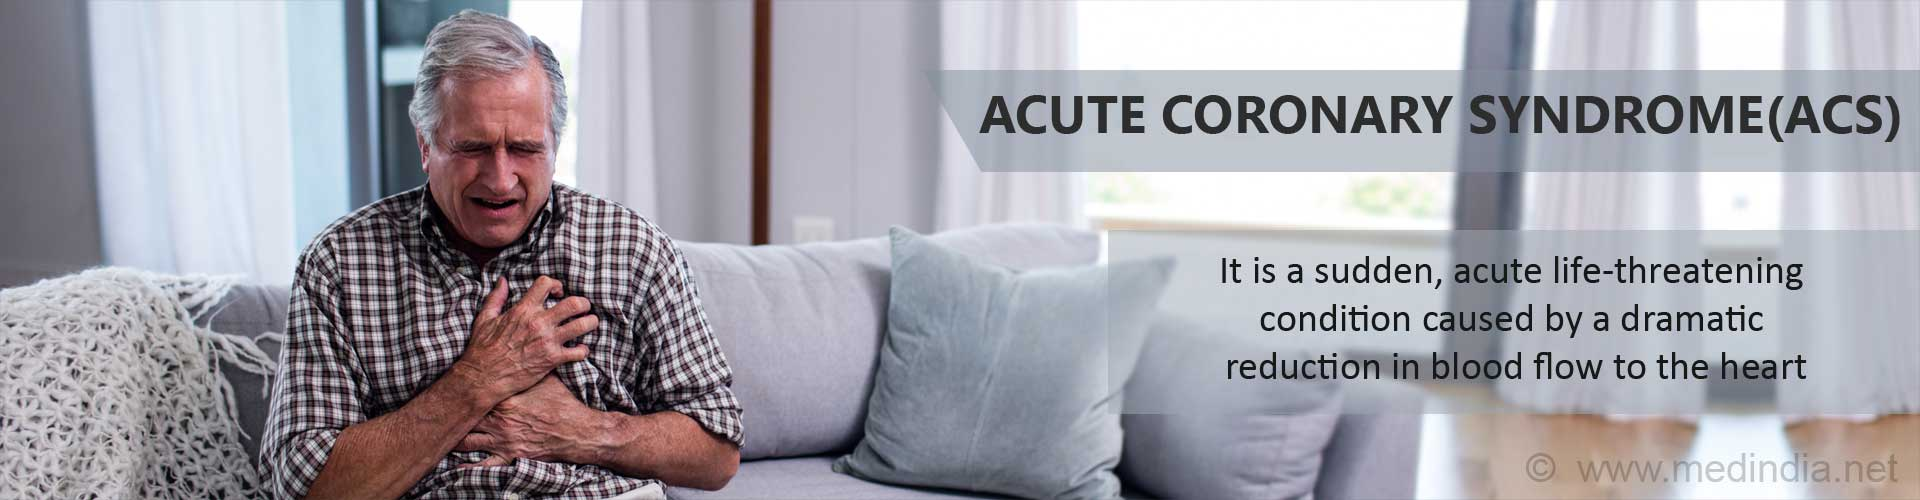 Acute coronary syndrome (ACS) is a sudden, acute life-threatening condition caused by a dramatic reduction in blood flow to the heart.